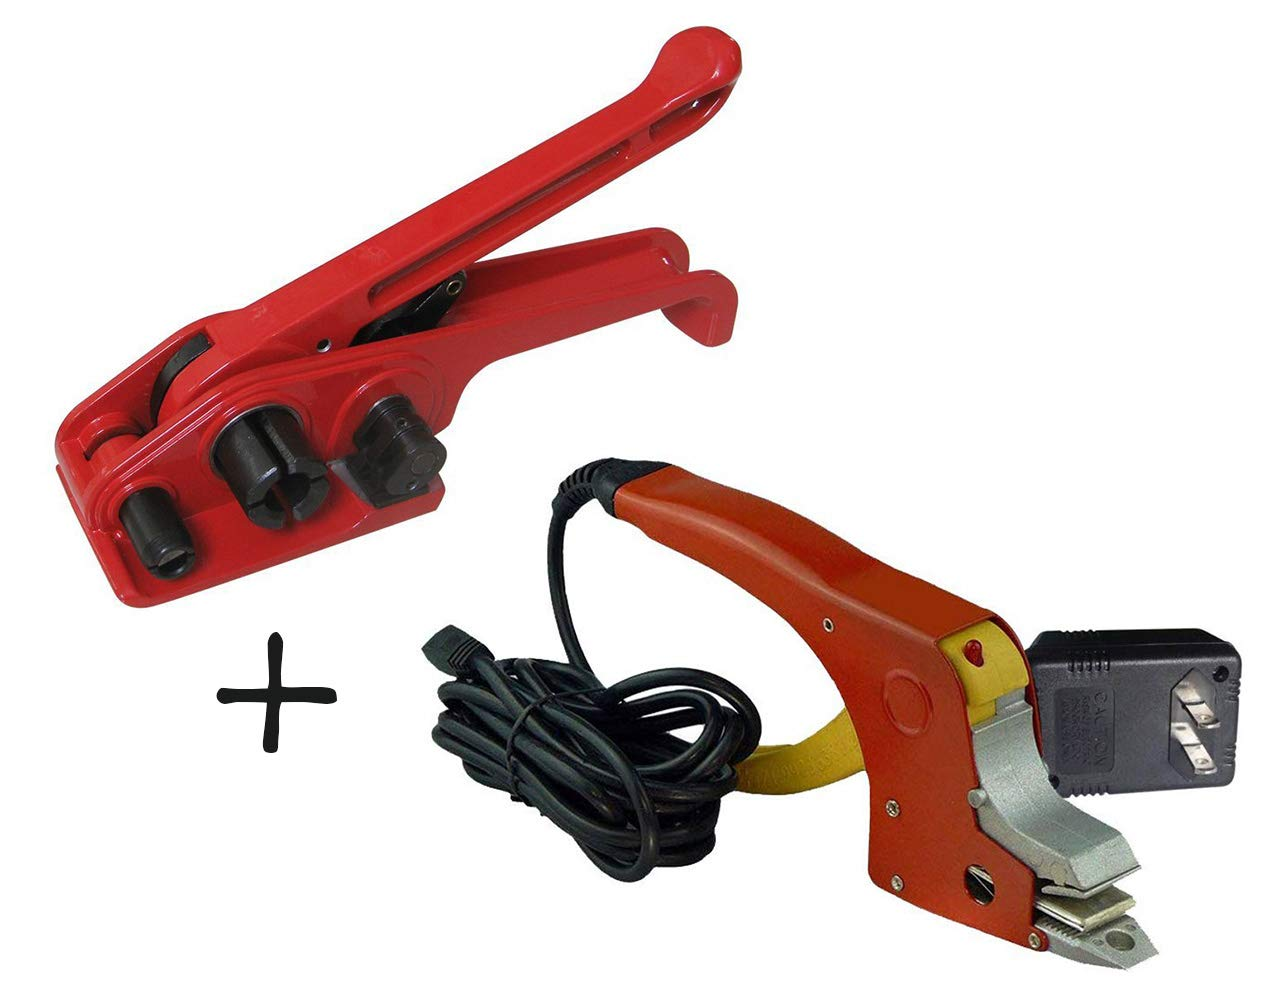 """Poly Strapping Tensioner & Hot Meltting Strapping Sealer for Ploypropylene Strap 1/2 to 5/8"""" Buckle-Free Electrical Strapping Tools"""